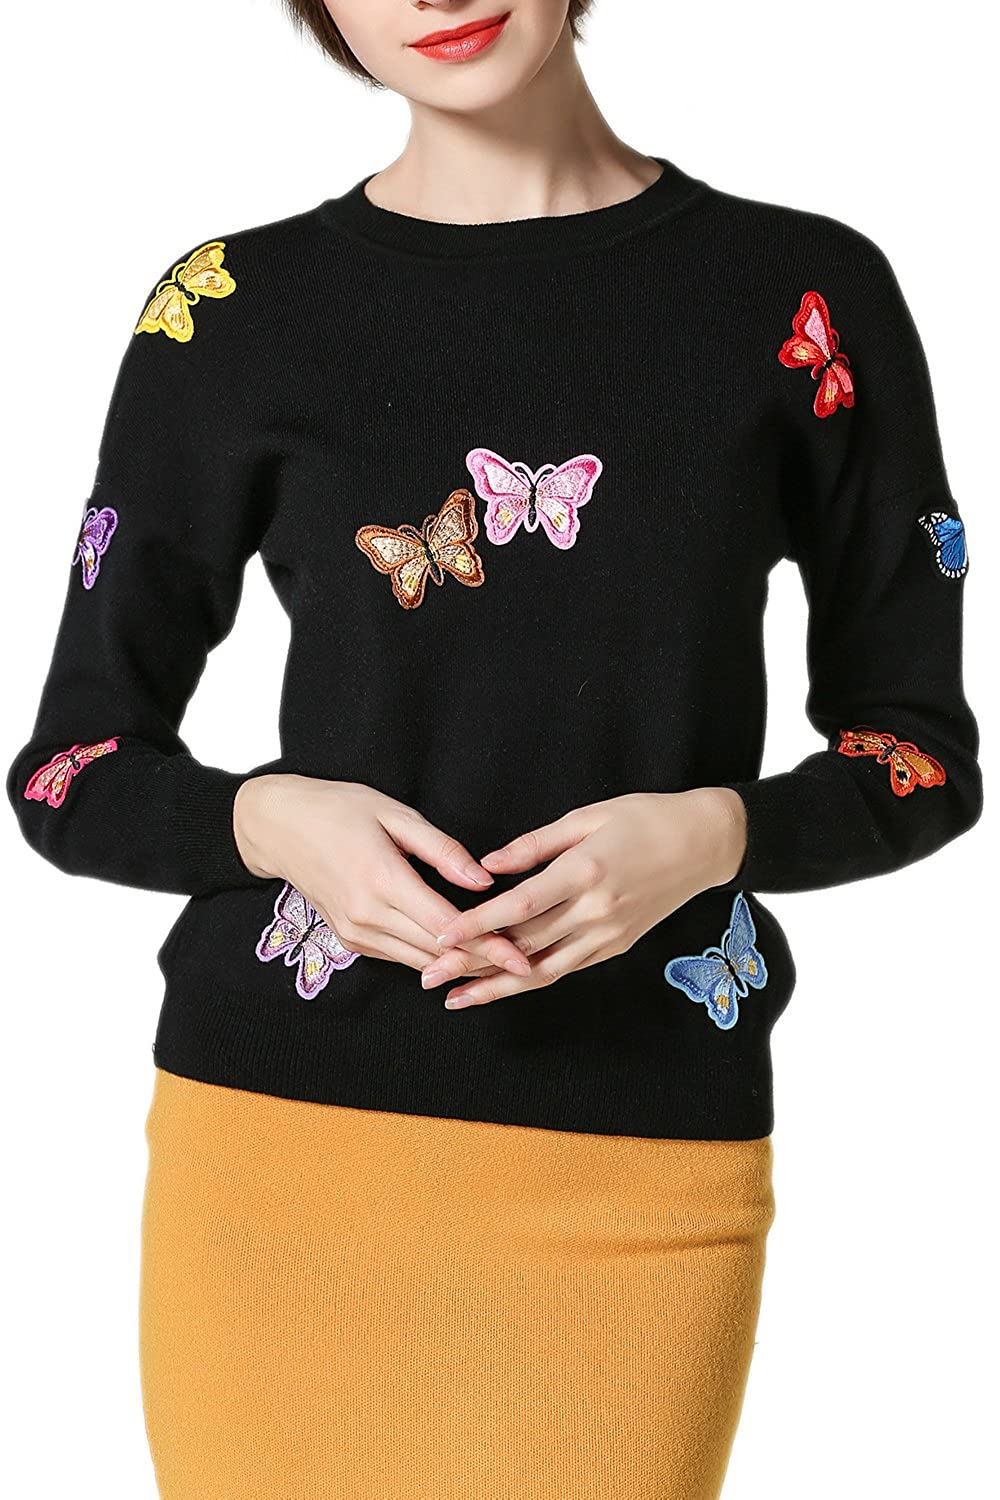 Women's Long Sleeve Butterfly Embroidery Pullover Sweater